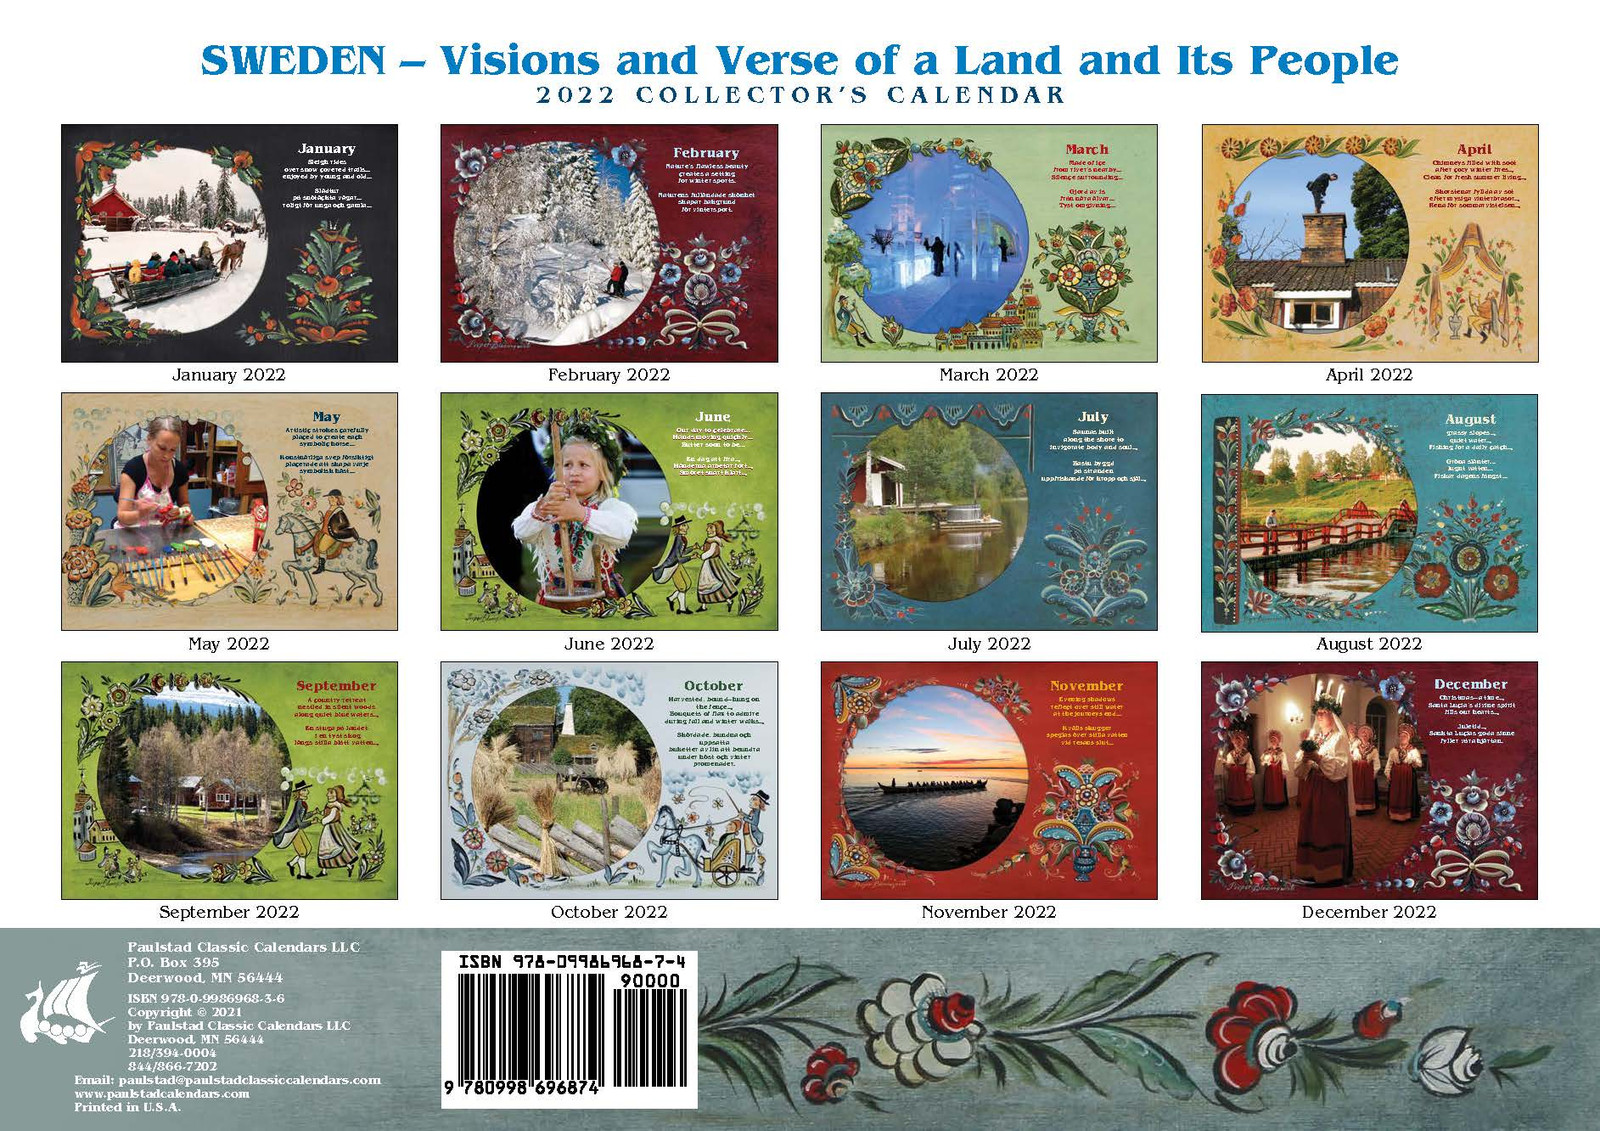 2022 Sweden Visions and Verse Calendar - Paulstad, Back Cover